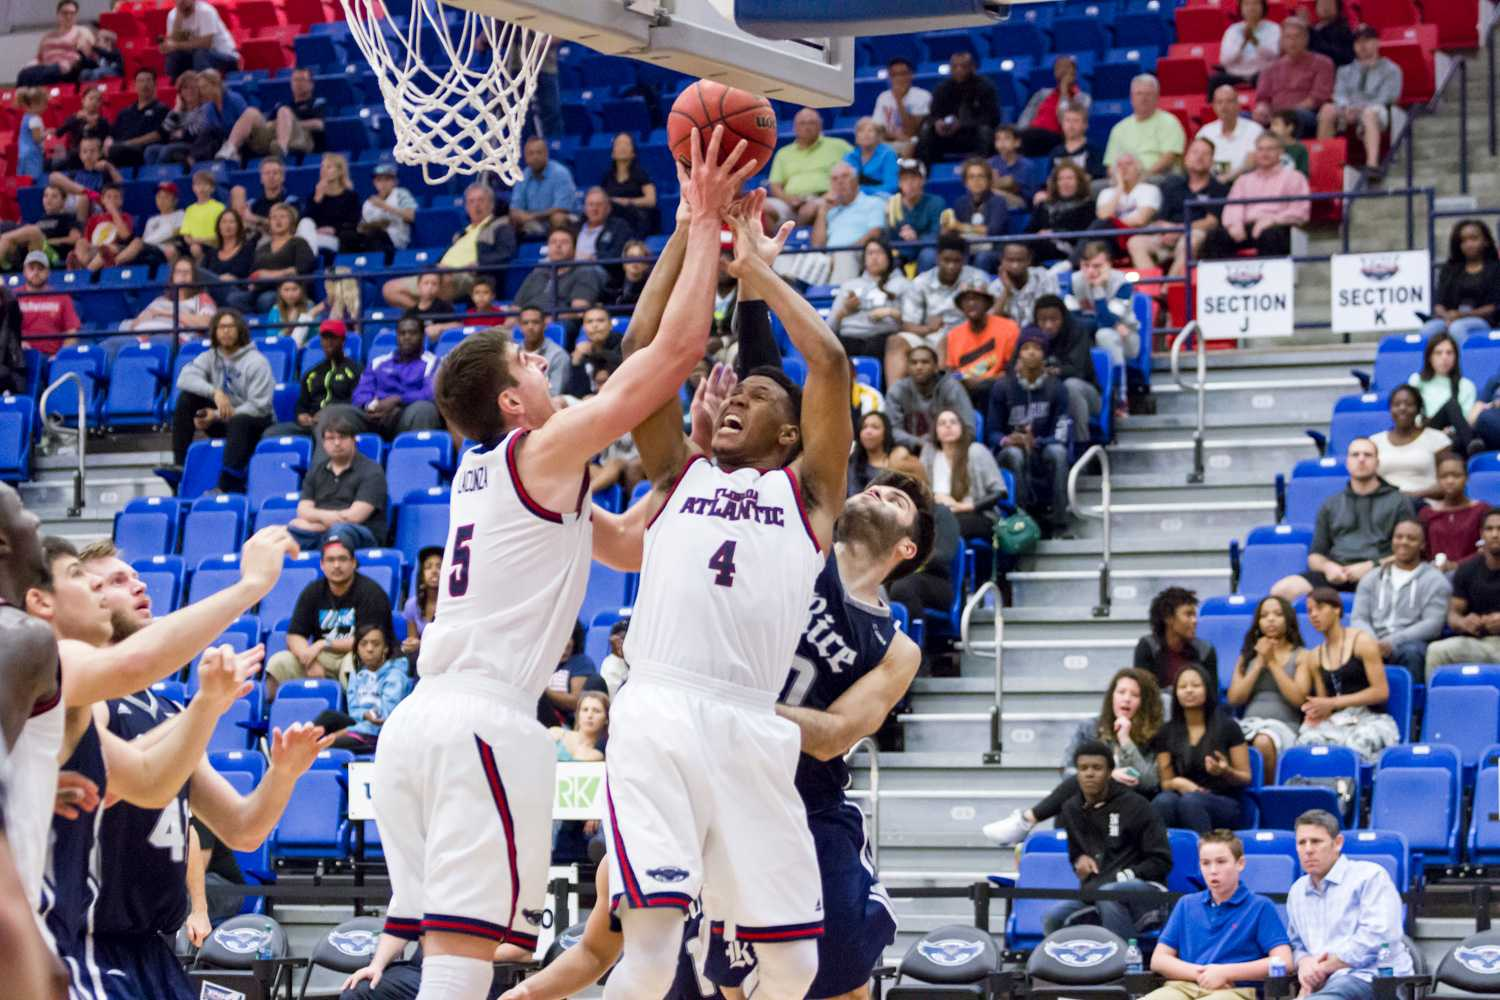 Freshman guard Justin Massey (4) and Lacunza (5) fight to secure a rebound. The Owls out-rebounded Rice 28-27, and Massey tied his career high with eight rebounds.